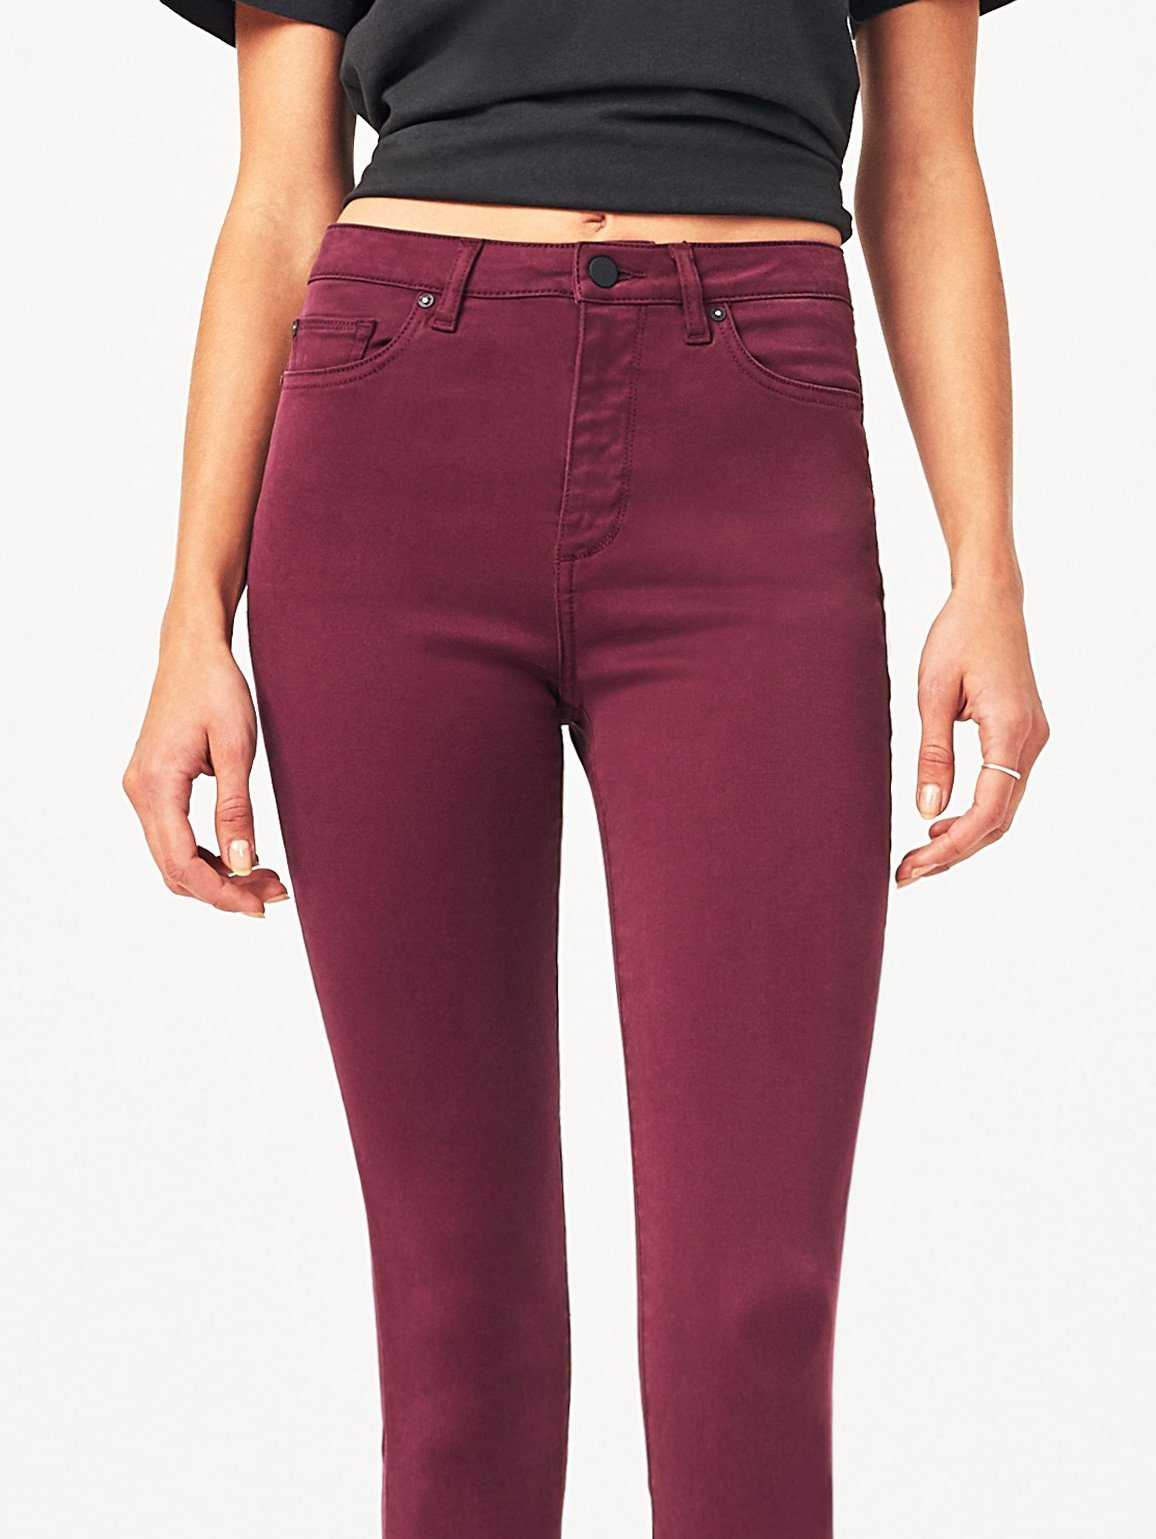 Women - Chrissy Trimtone Skinny Rouge Noir - DL1961